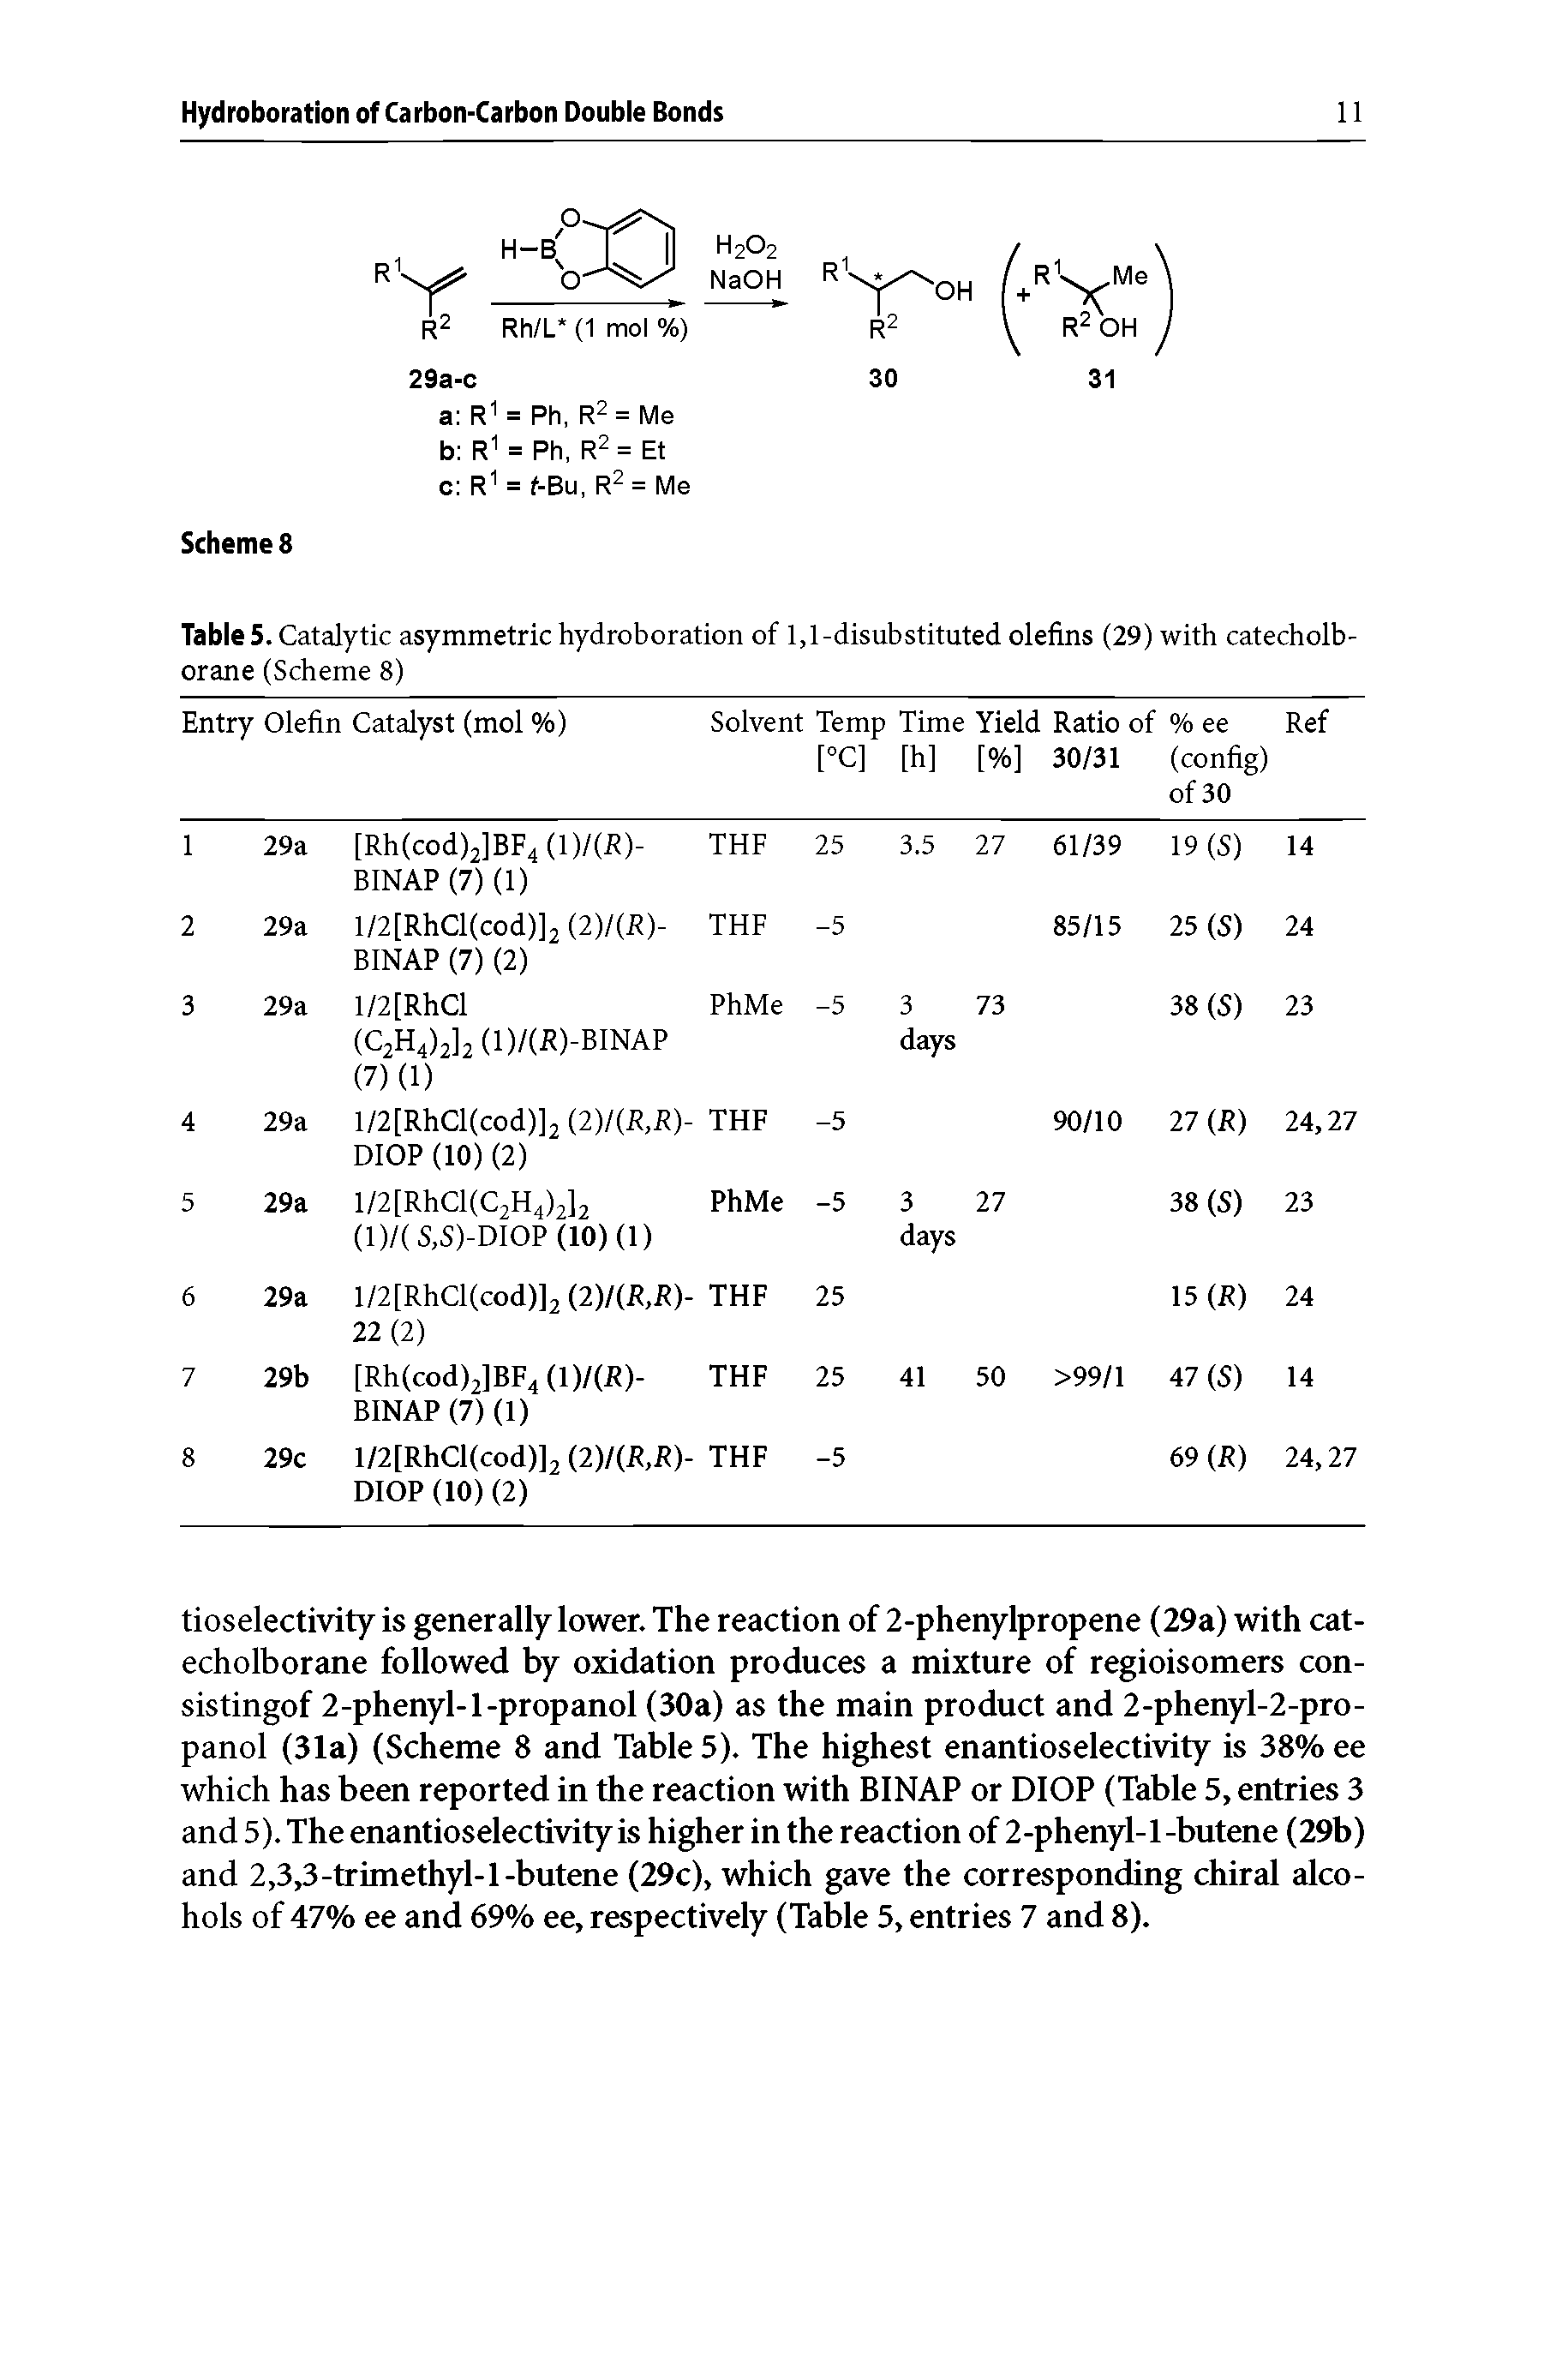 "Table 5. Catalytic asymmetric hydroboration of 1,1-<a href=""/info/disubstituted_olefins"">disubstituted olefins</a> (29) with catecholb-orane (Scheme 8)"